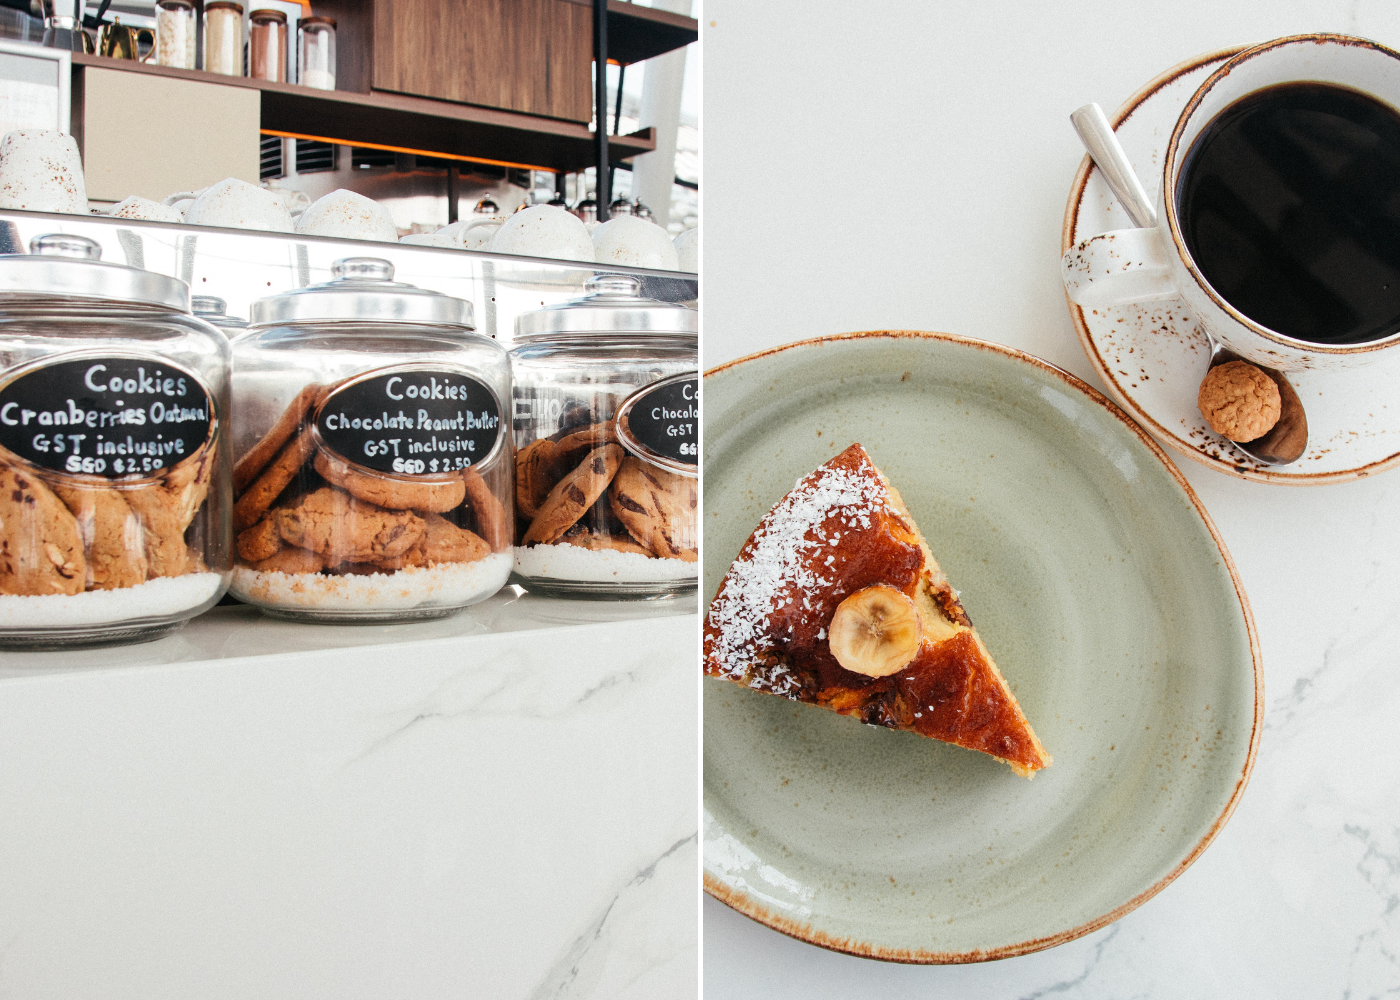 Left: Cookies on display, right: Coconut Banana Tart and French press coffee. Photography: Huanghao Yeo